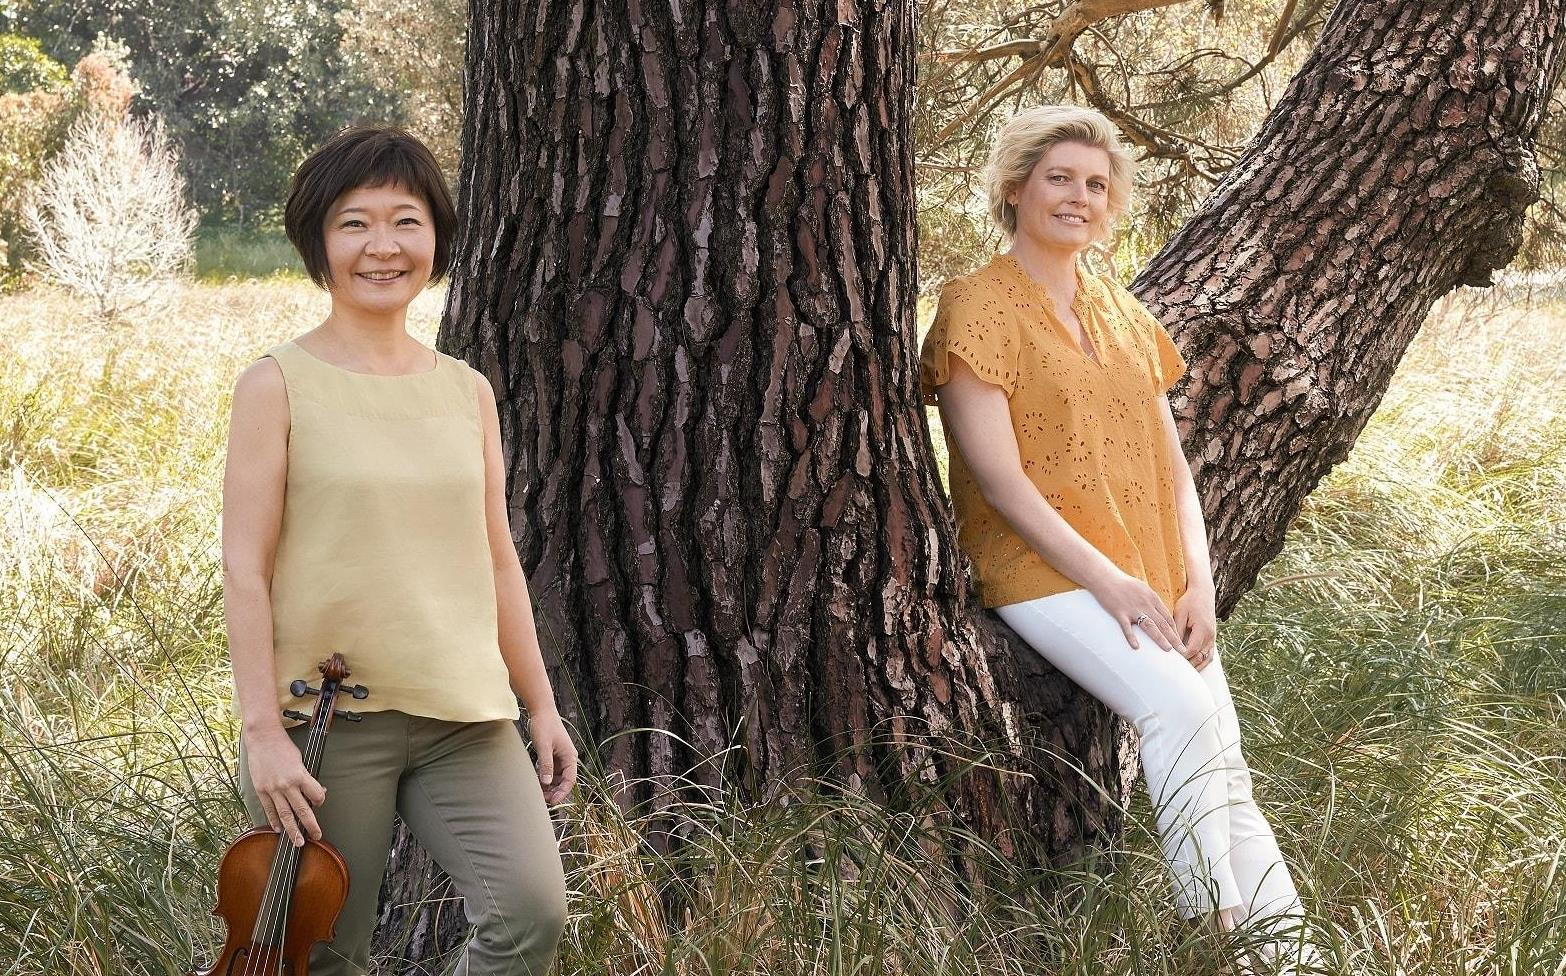 Musicians of the performance The Four Seasons, performing by the the Australian Chamber Orchestra this November.